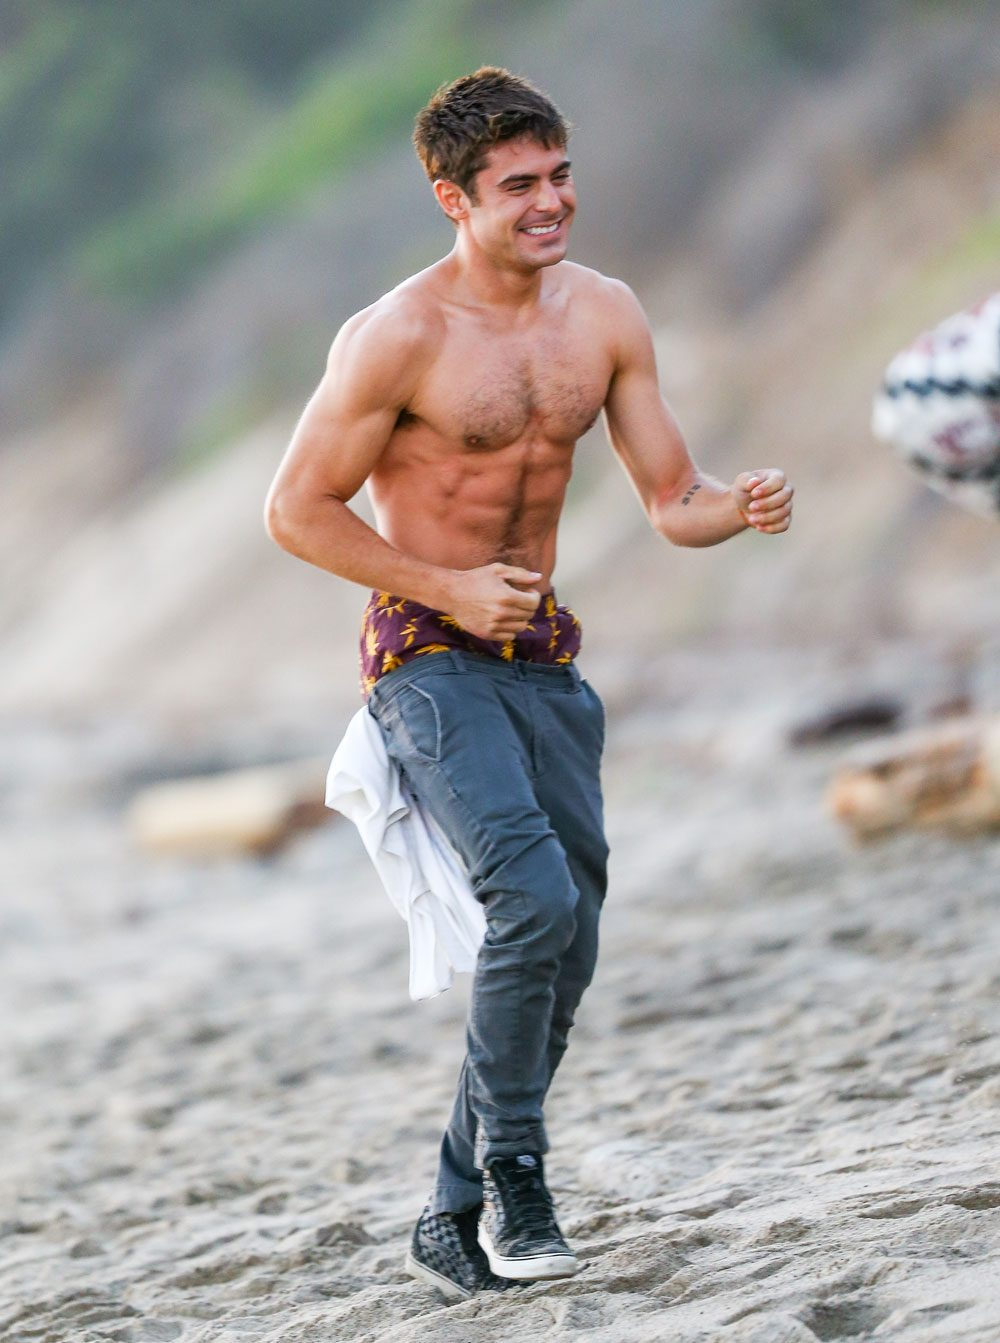 ZAC-EFRON-BEACH-NAKED-1